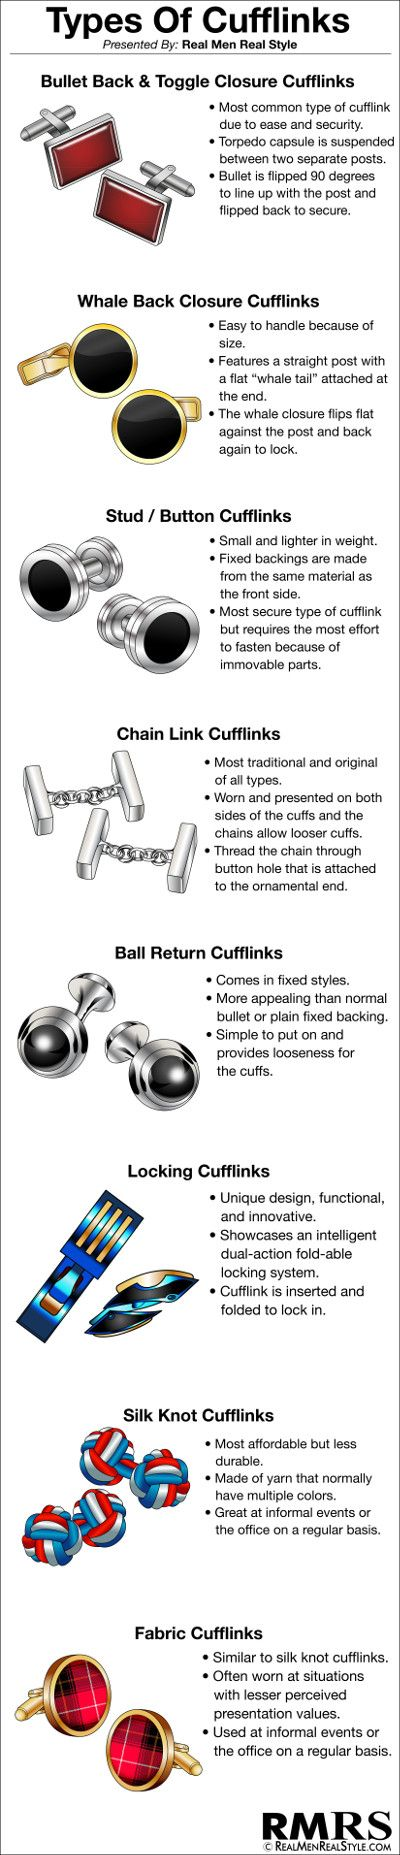 What Exactly Are Cufflinks?